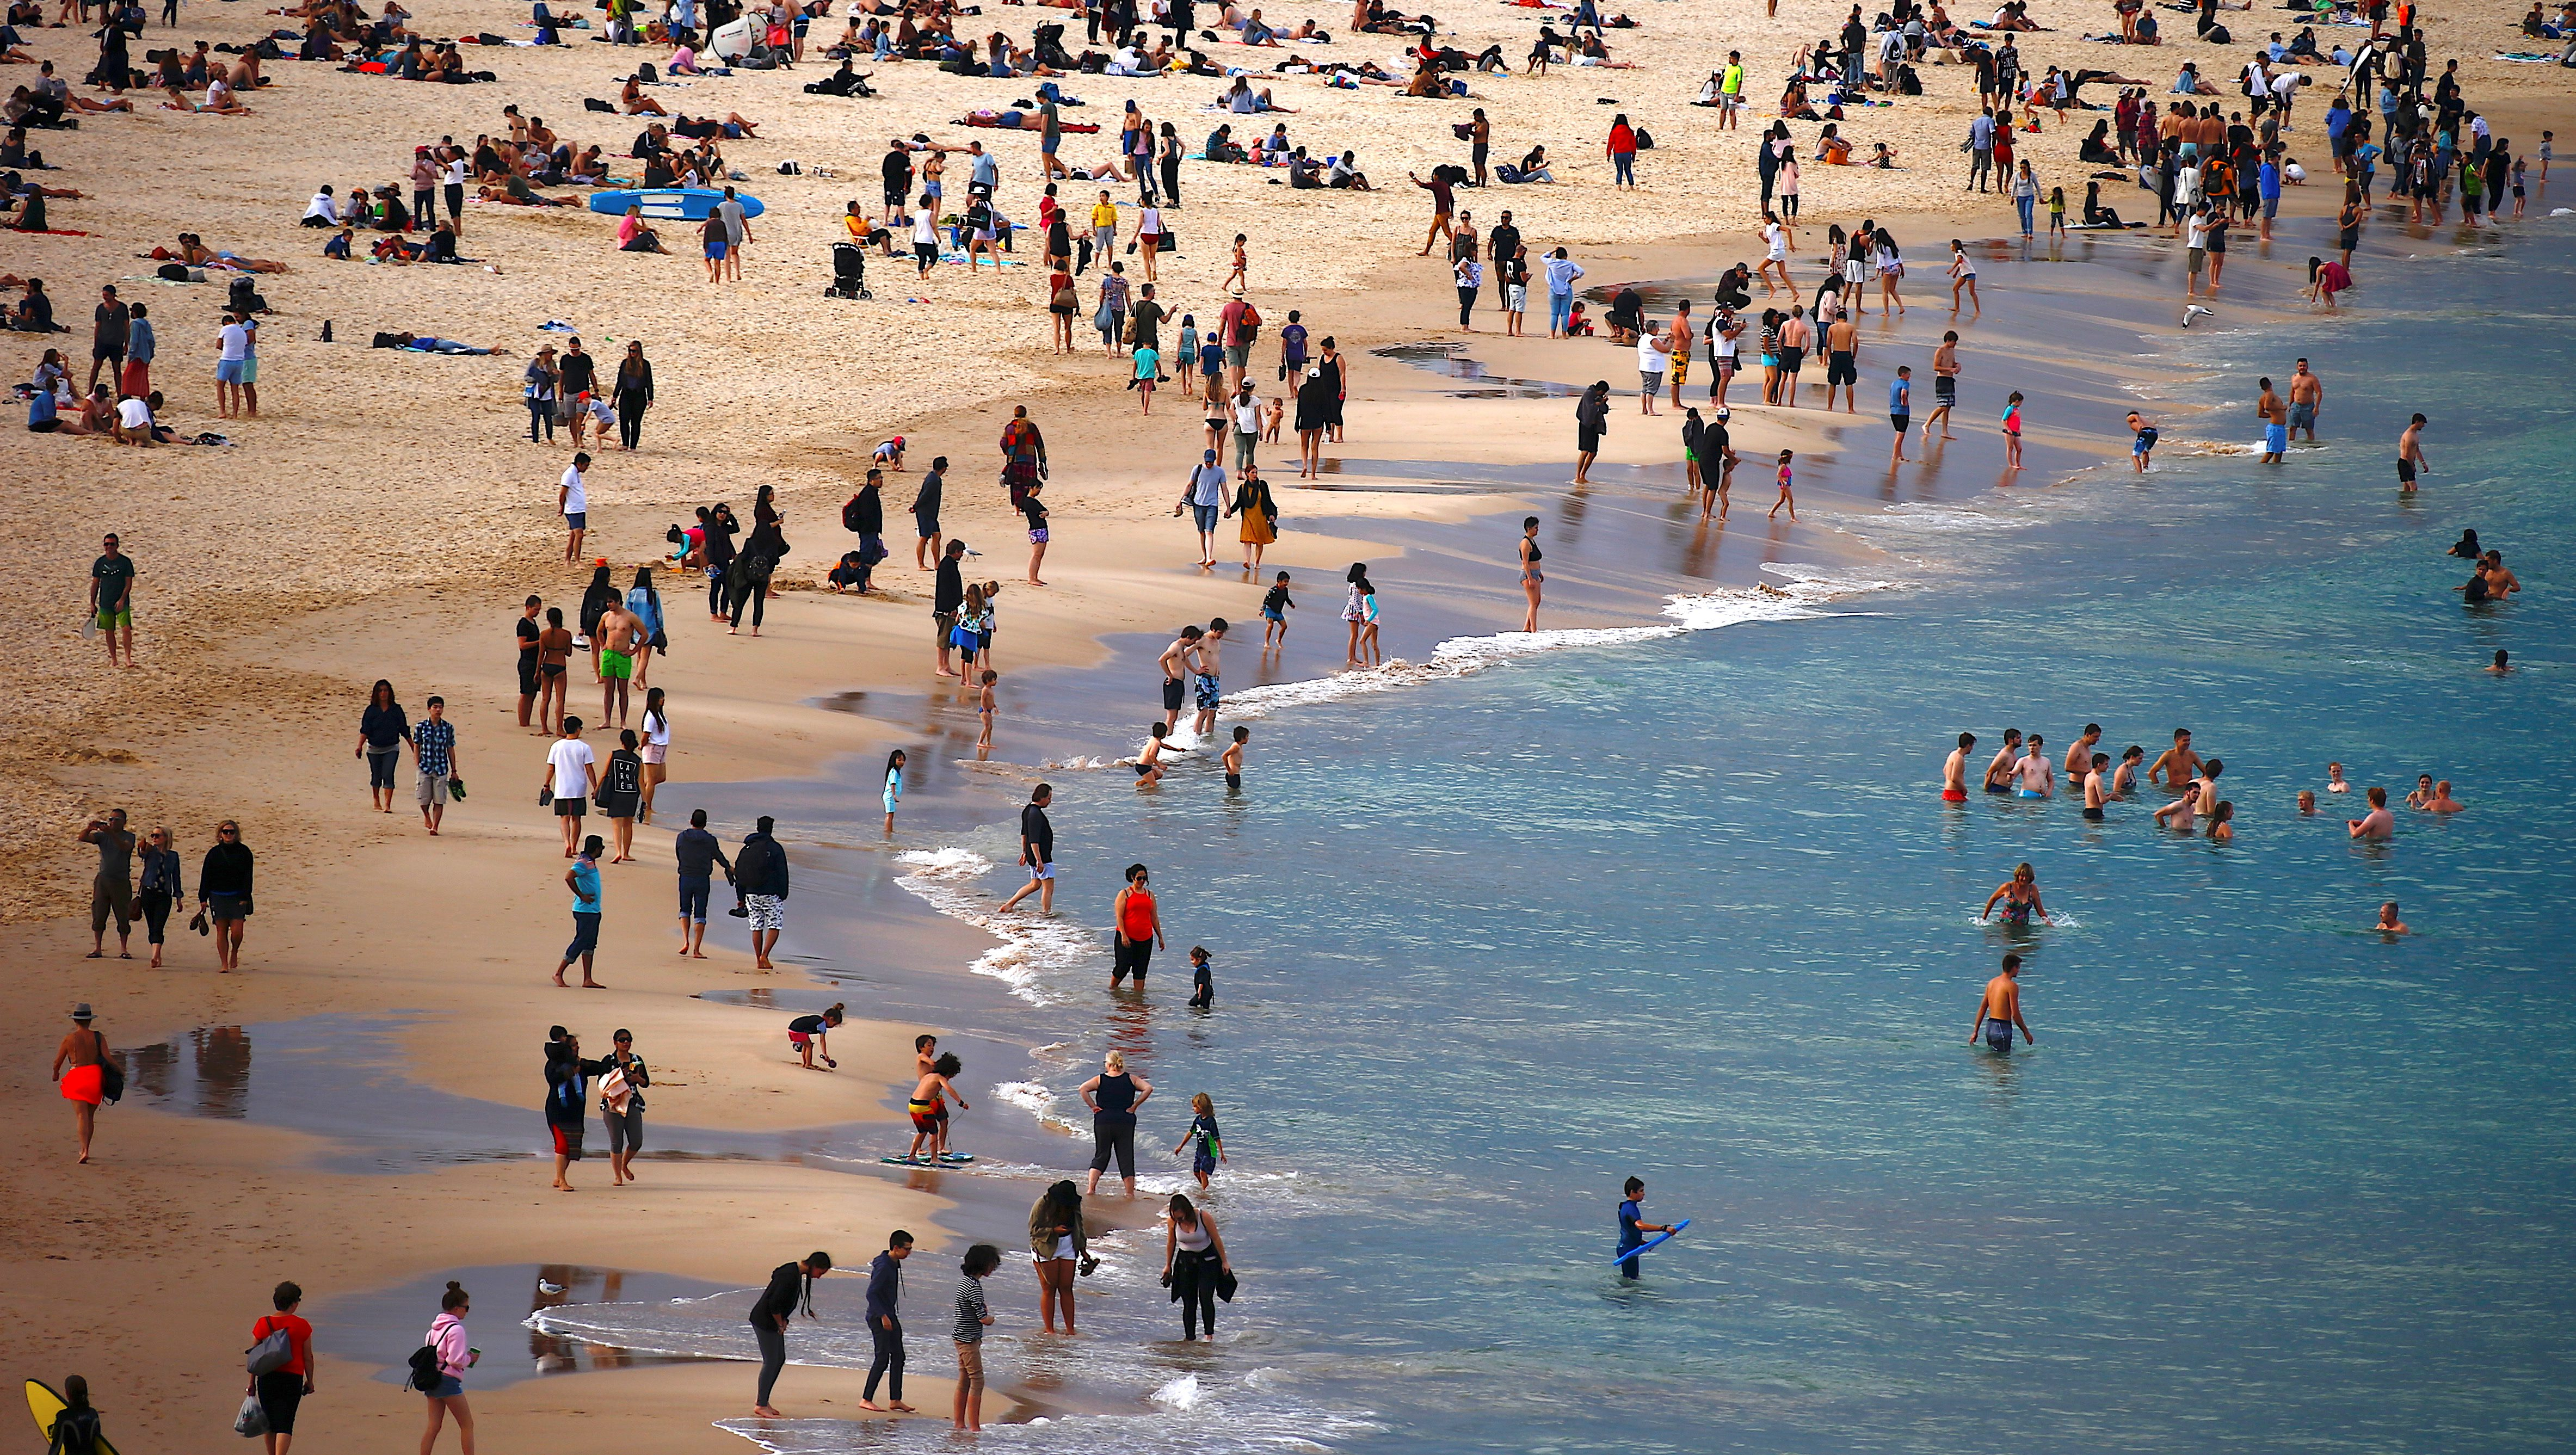 Beachgoers swim and stand on the edge of the water at Sydney's Bondi Beach on a winter day in Australia, July 30, 2017.